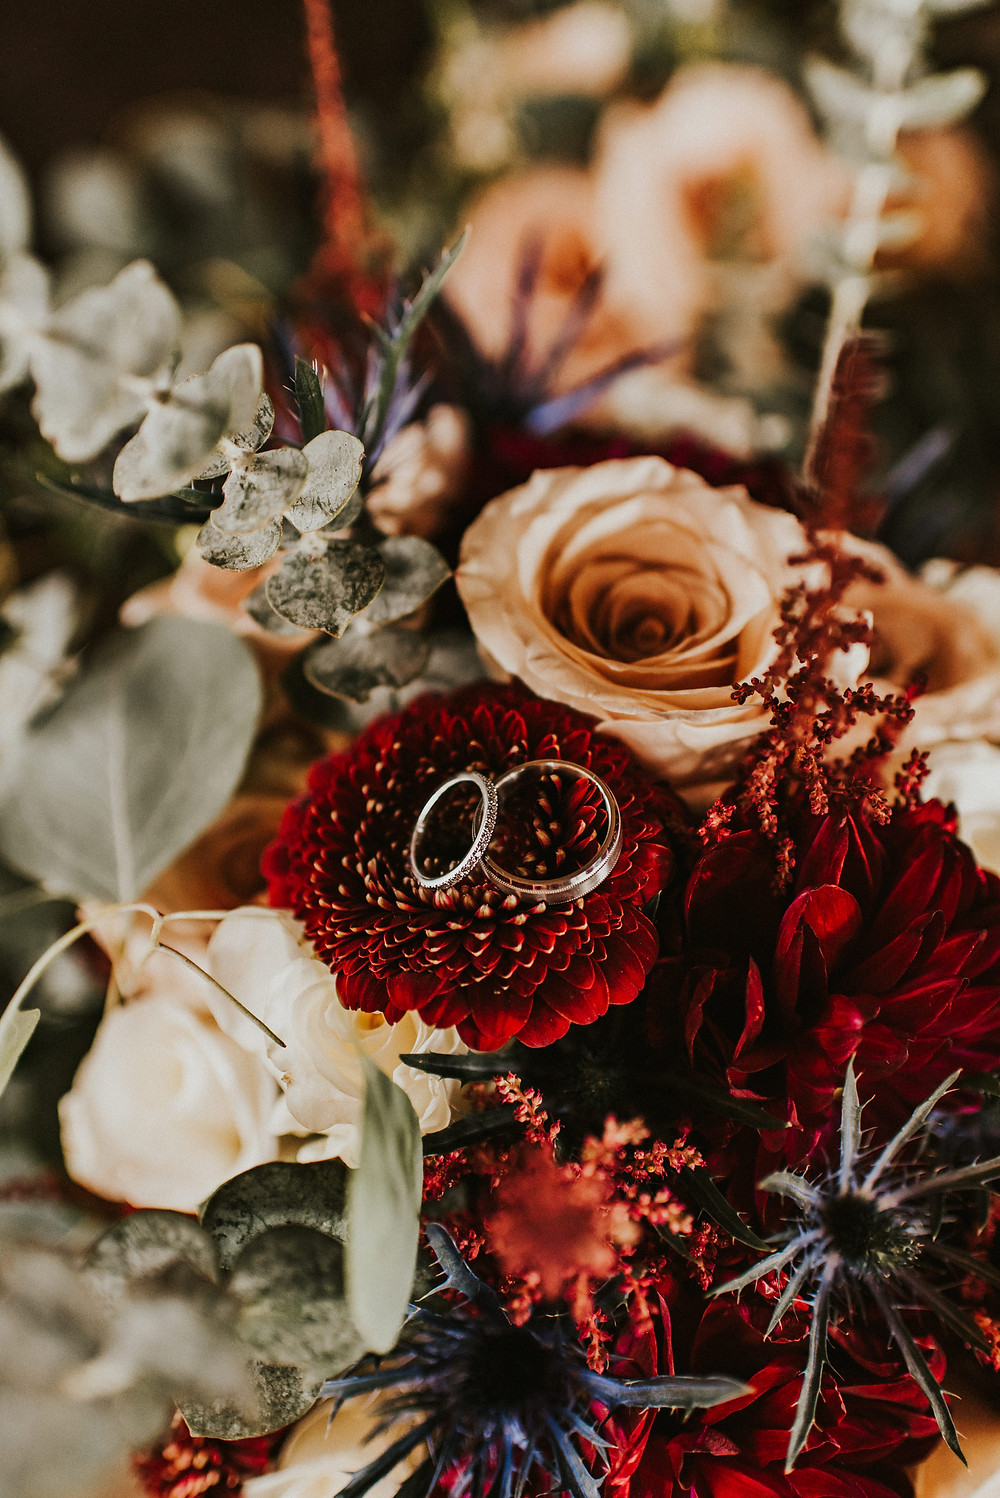 wedding rings in a bouquet with red and white flowers